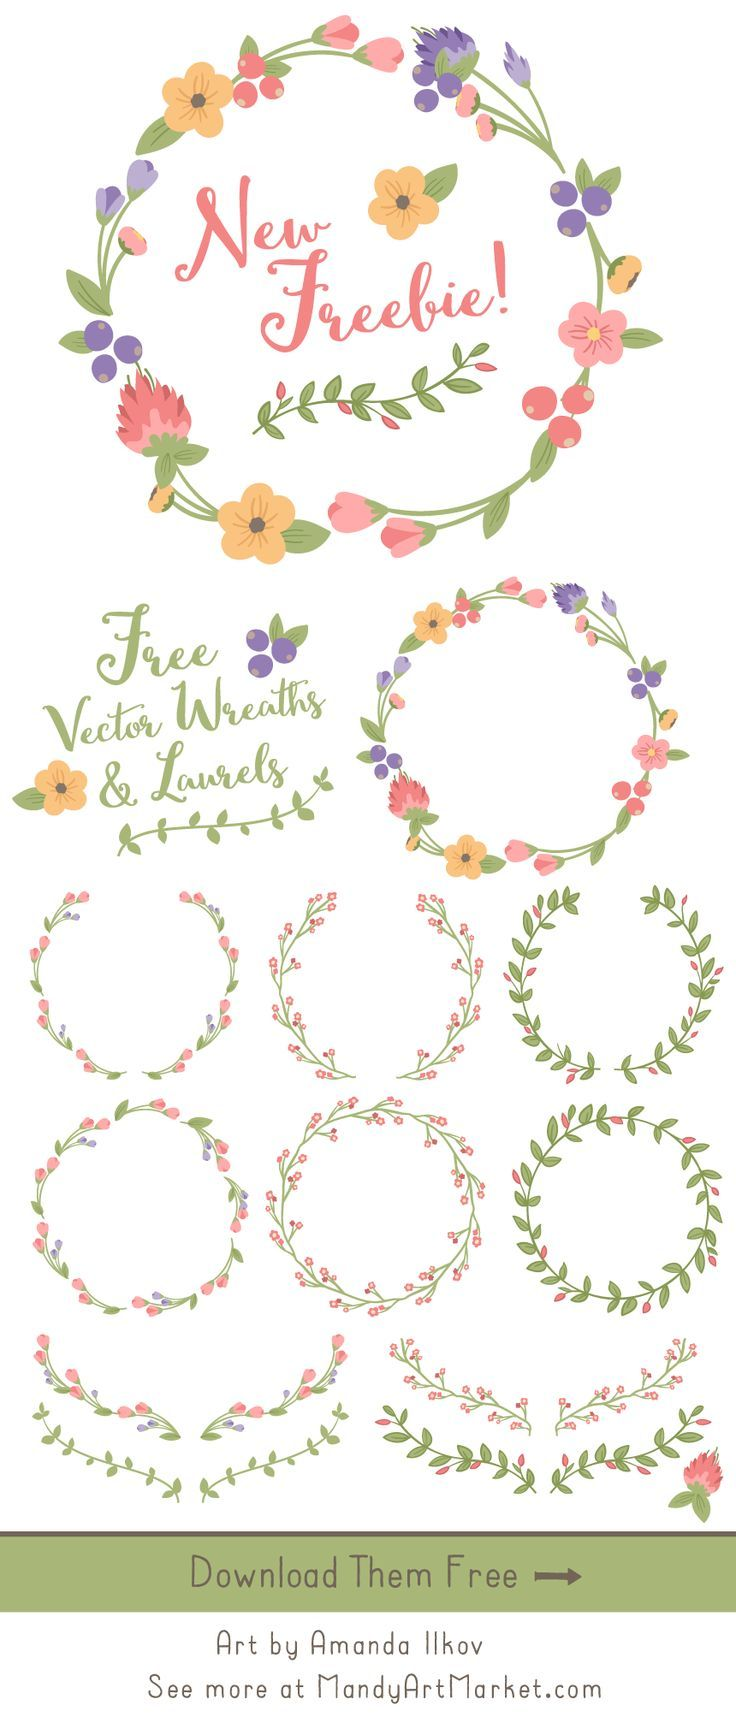 medium resolution of new august freebie grab these pretty vector wreaths laurels and branches for free